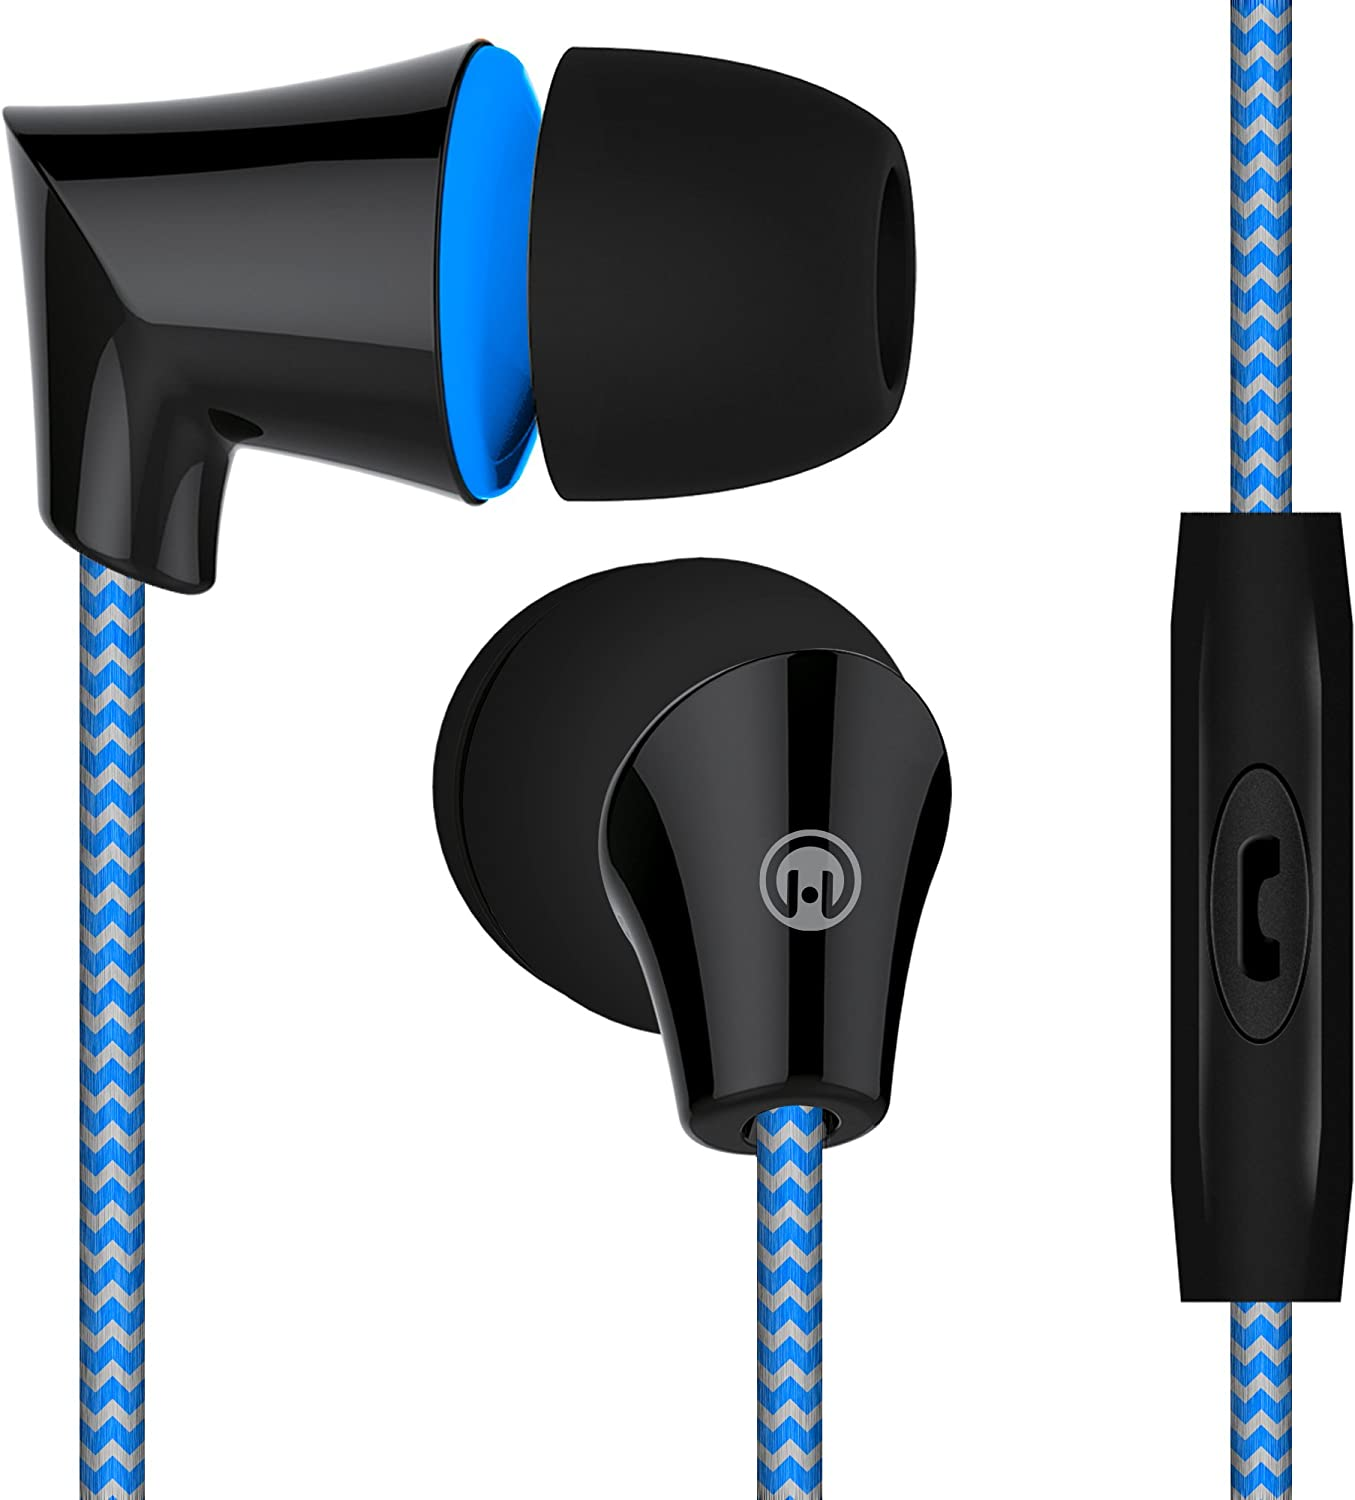 HyperGear Sound Wavez Earphones. In-line Microphone, Hands-free Calls Music. Comfort-fit Ear Gels Blocks out Noise Seal in Sound, Tangle-Free Braided Cable,10mm Neodymium Precision Bass Blue